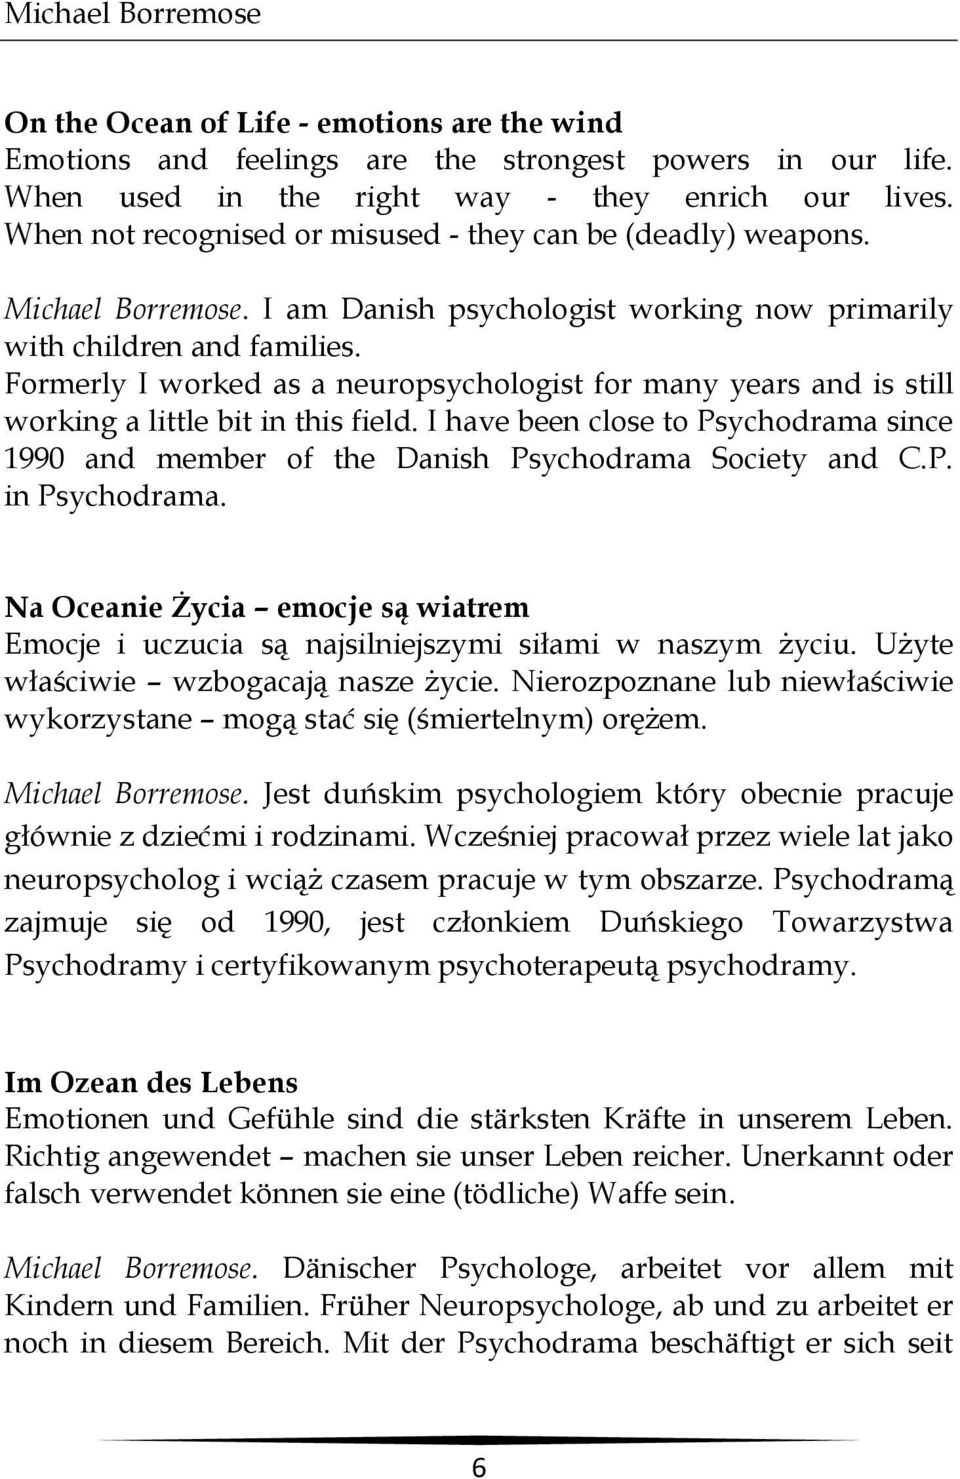 Formerly I worked as a neuropsychologist for many years and is still working a little bit in this field. I have been close to Psychodrama since 1990 and member of the Danish Psychodrama Society and C.